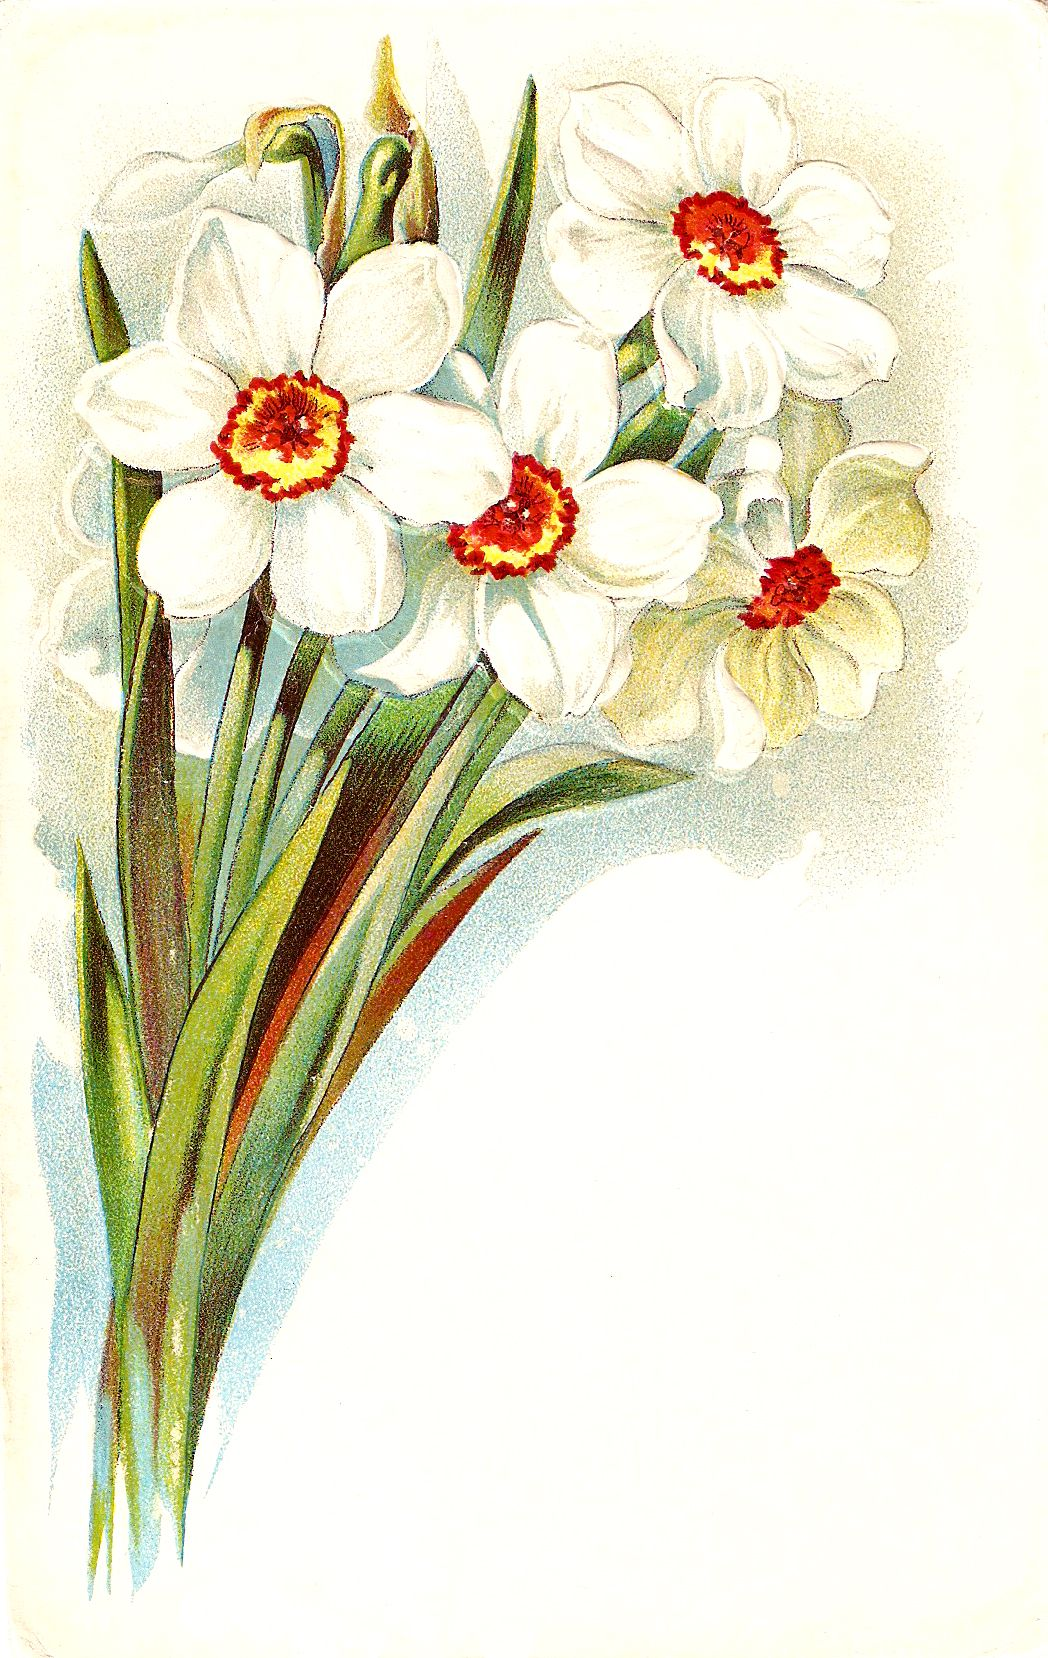 catnipstudiocollage free vintage clip art a bunch of daffodils